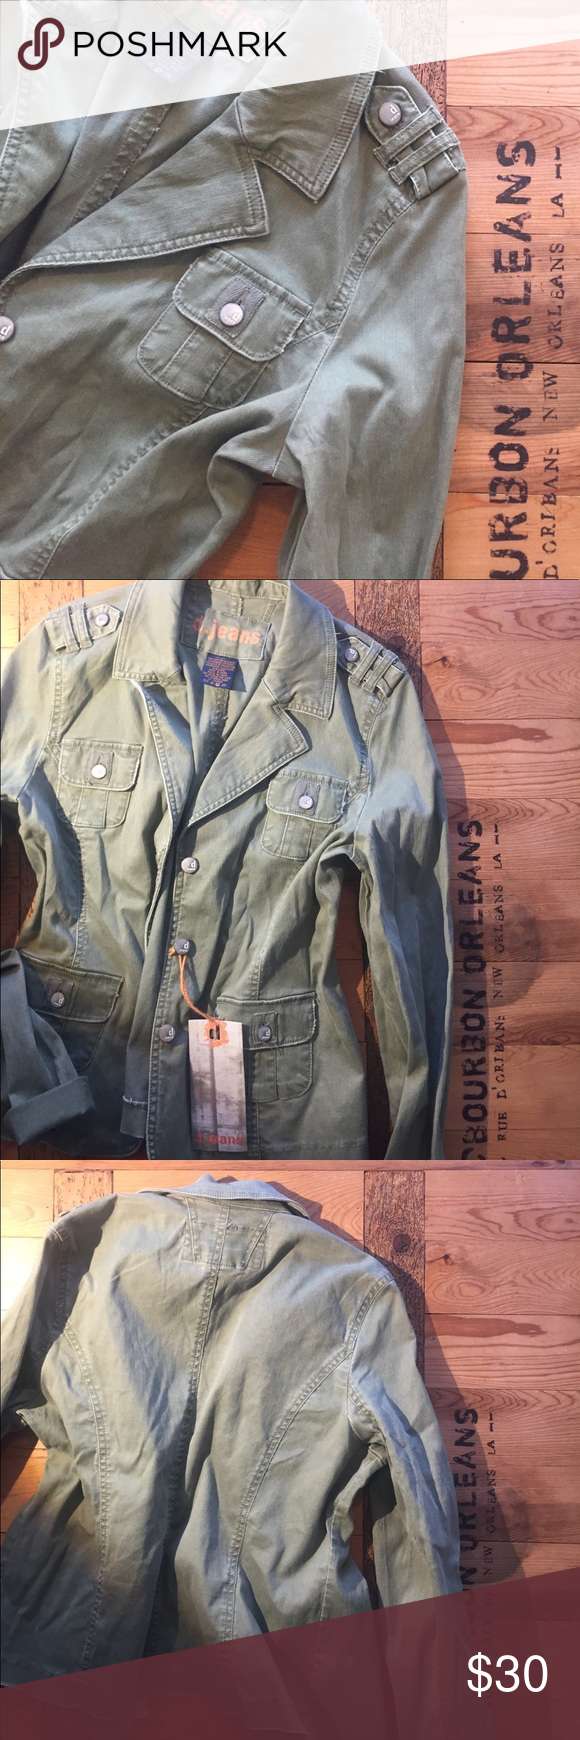 Green military jacket L Never worn. Size L -- measurements in images d jeans Jackets & Coats Utility Jackets